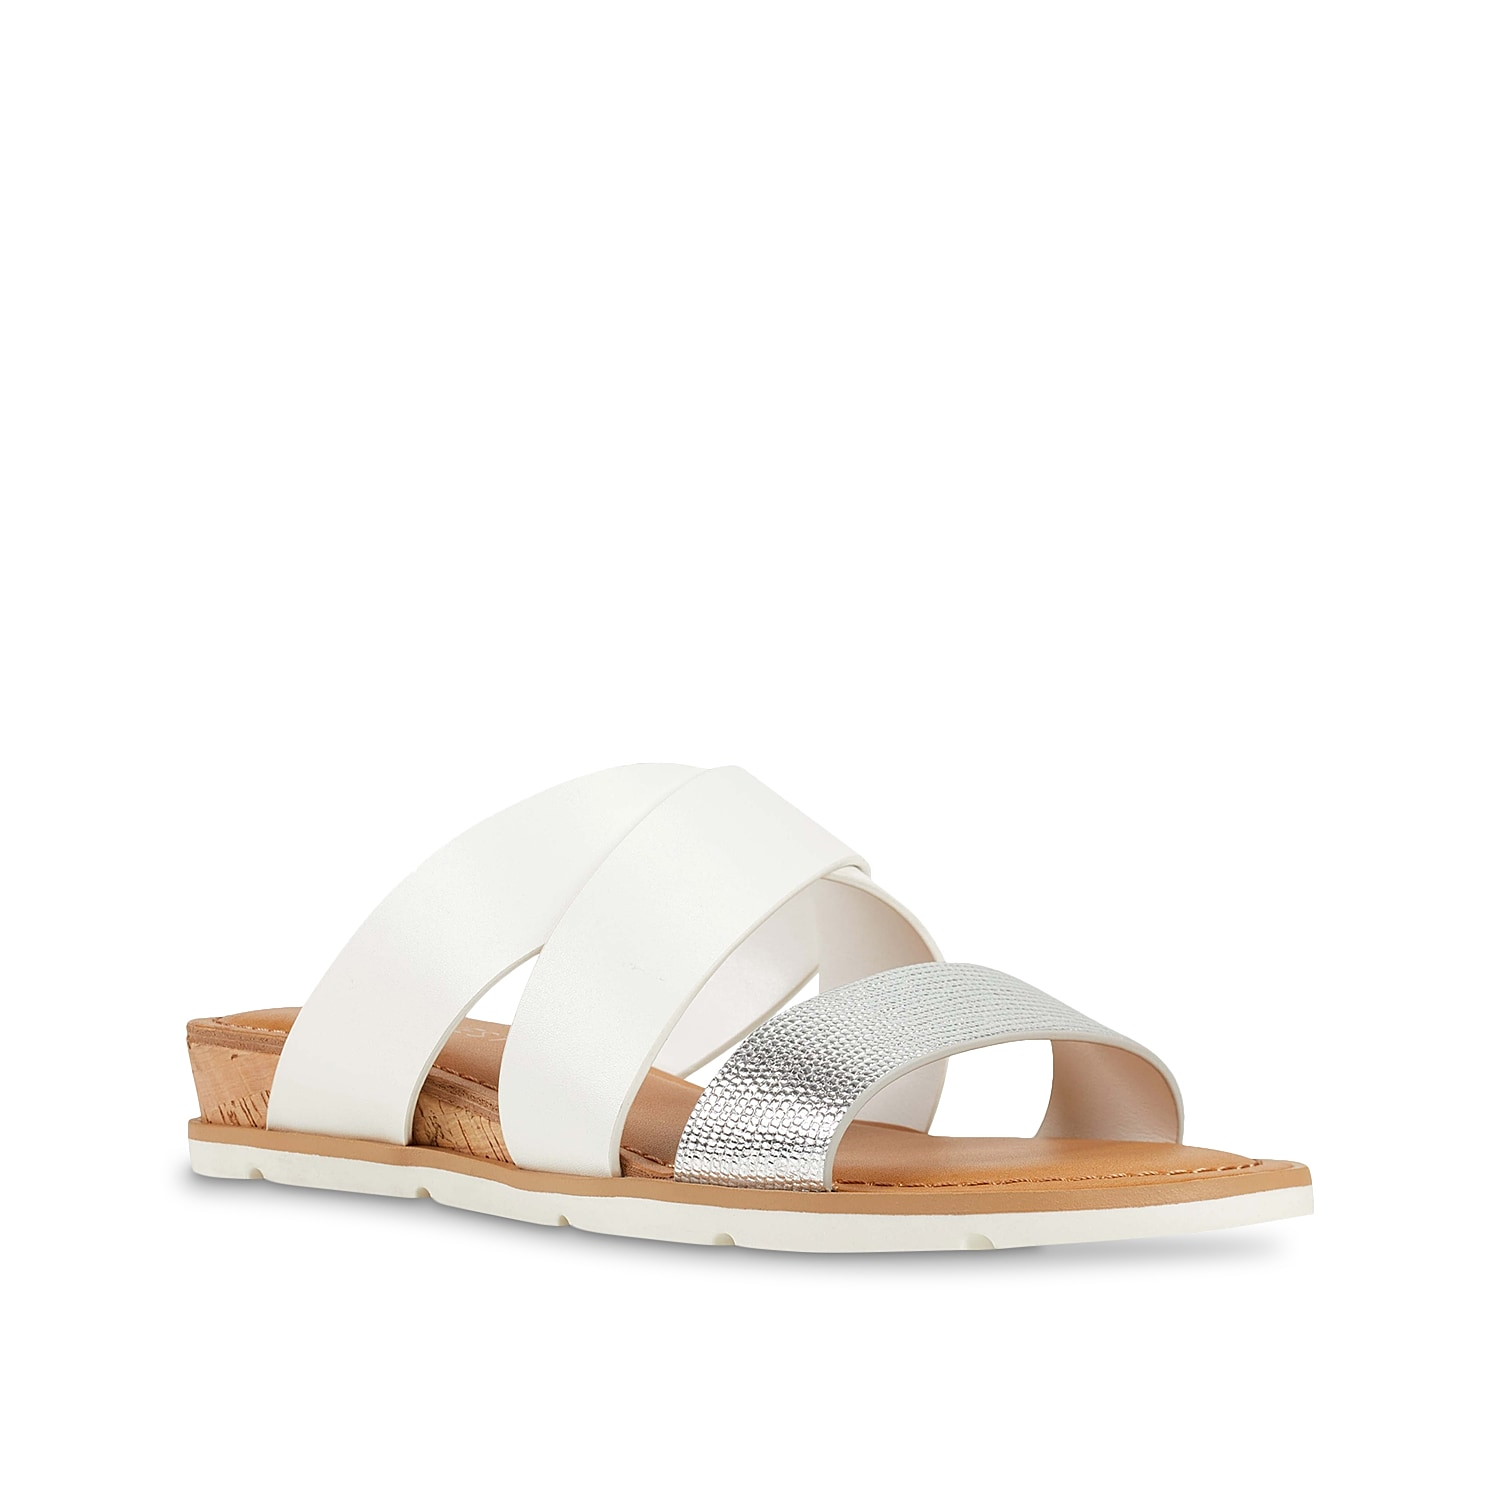 The Desiree wedge sandal from Nine West gives you a great sense of fashion. This silhouette features a textural toe strap and cork heel for extra style points!